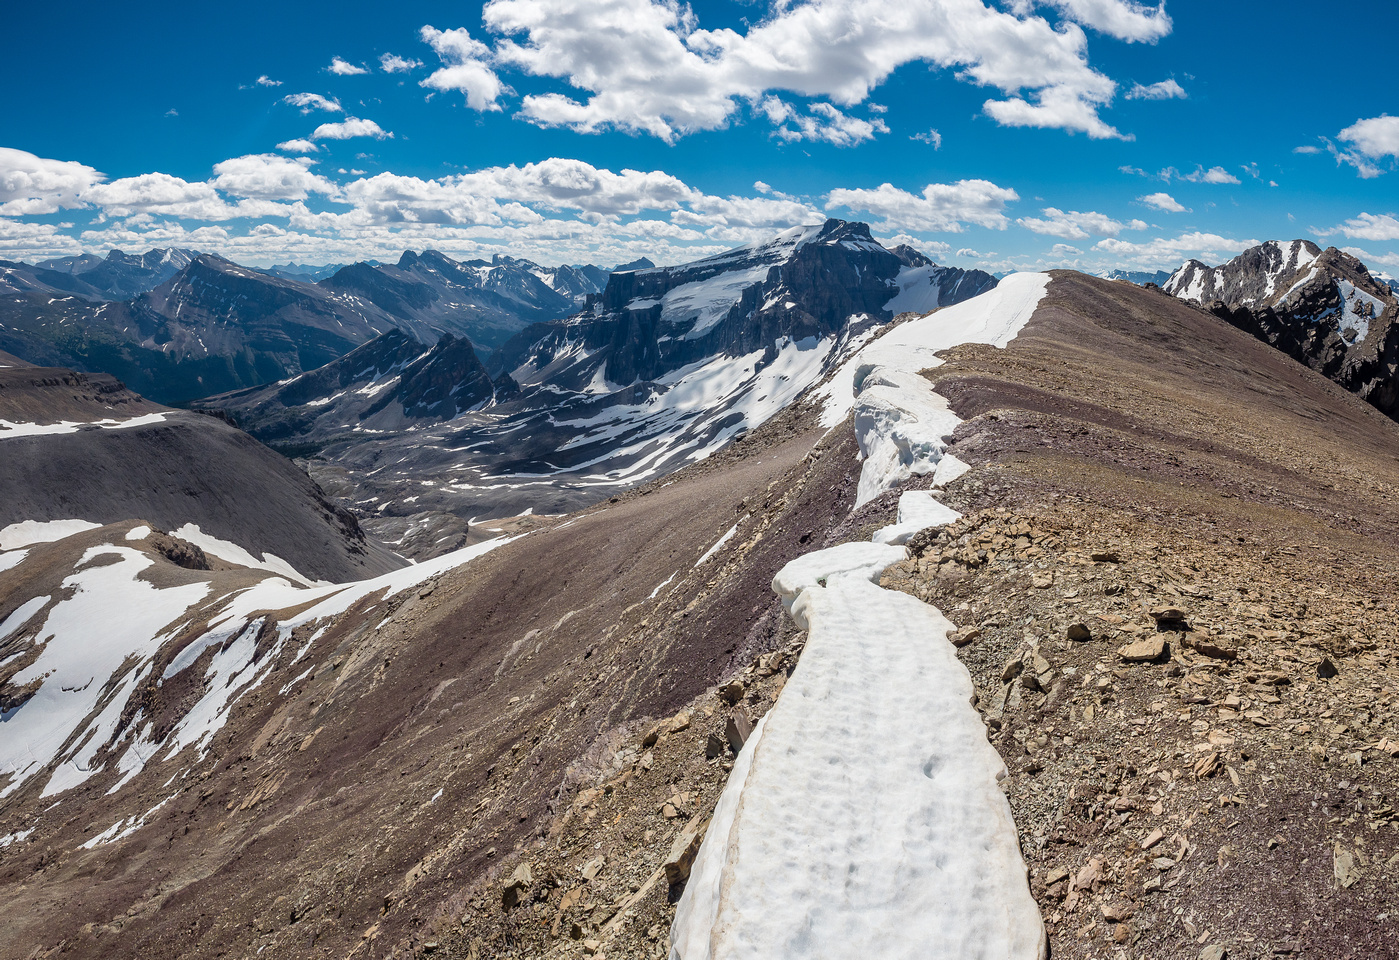 The easy descent slope towards Marmot Mountain goes down the left off the false summit and into the distant valley at left. Silverhorn at distant right here.